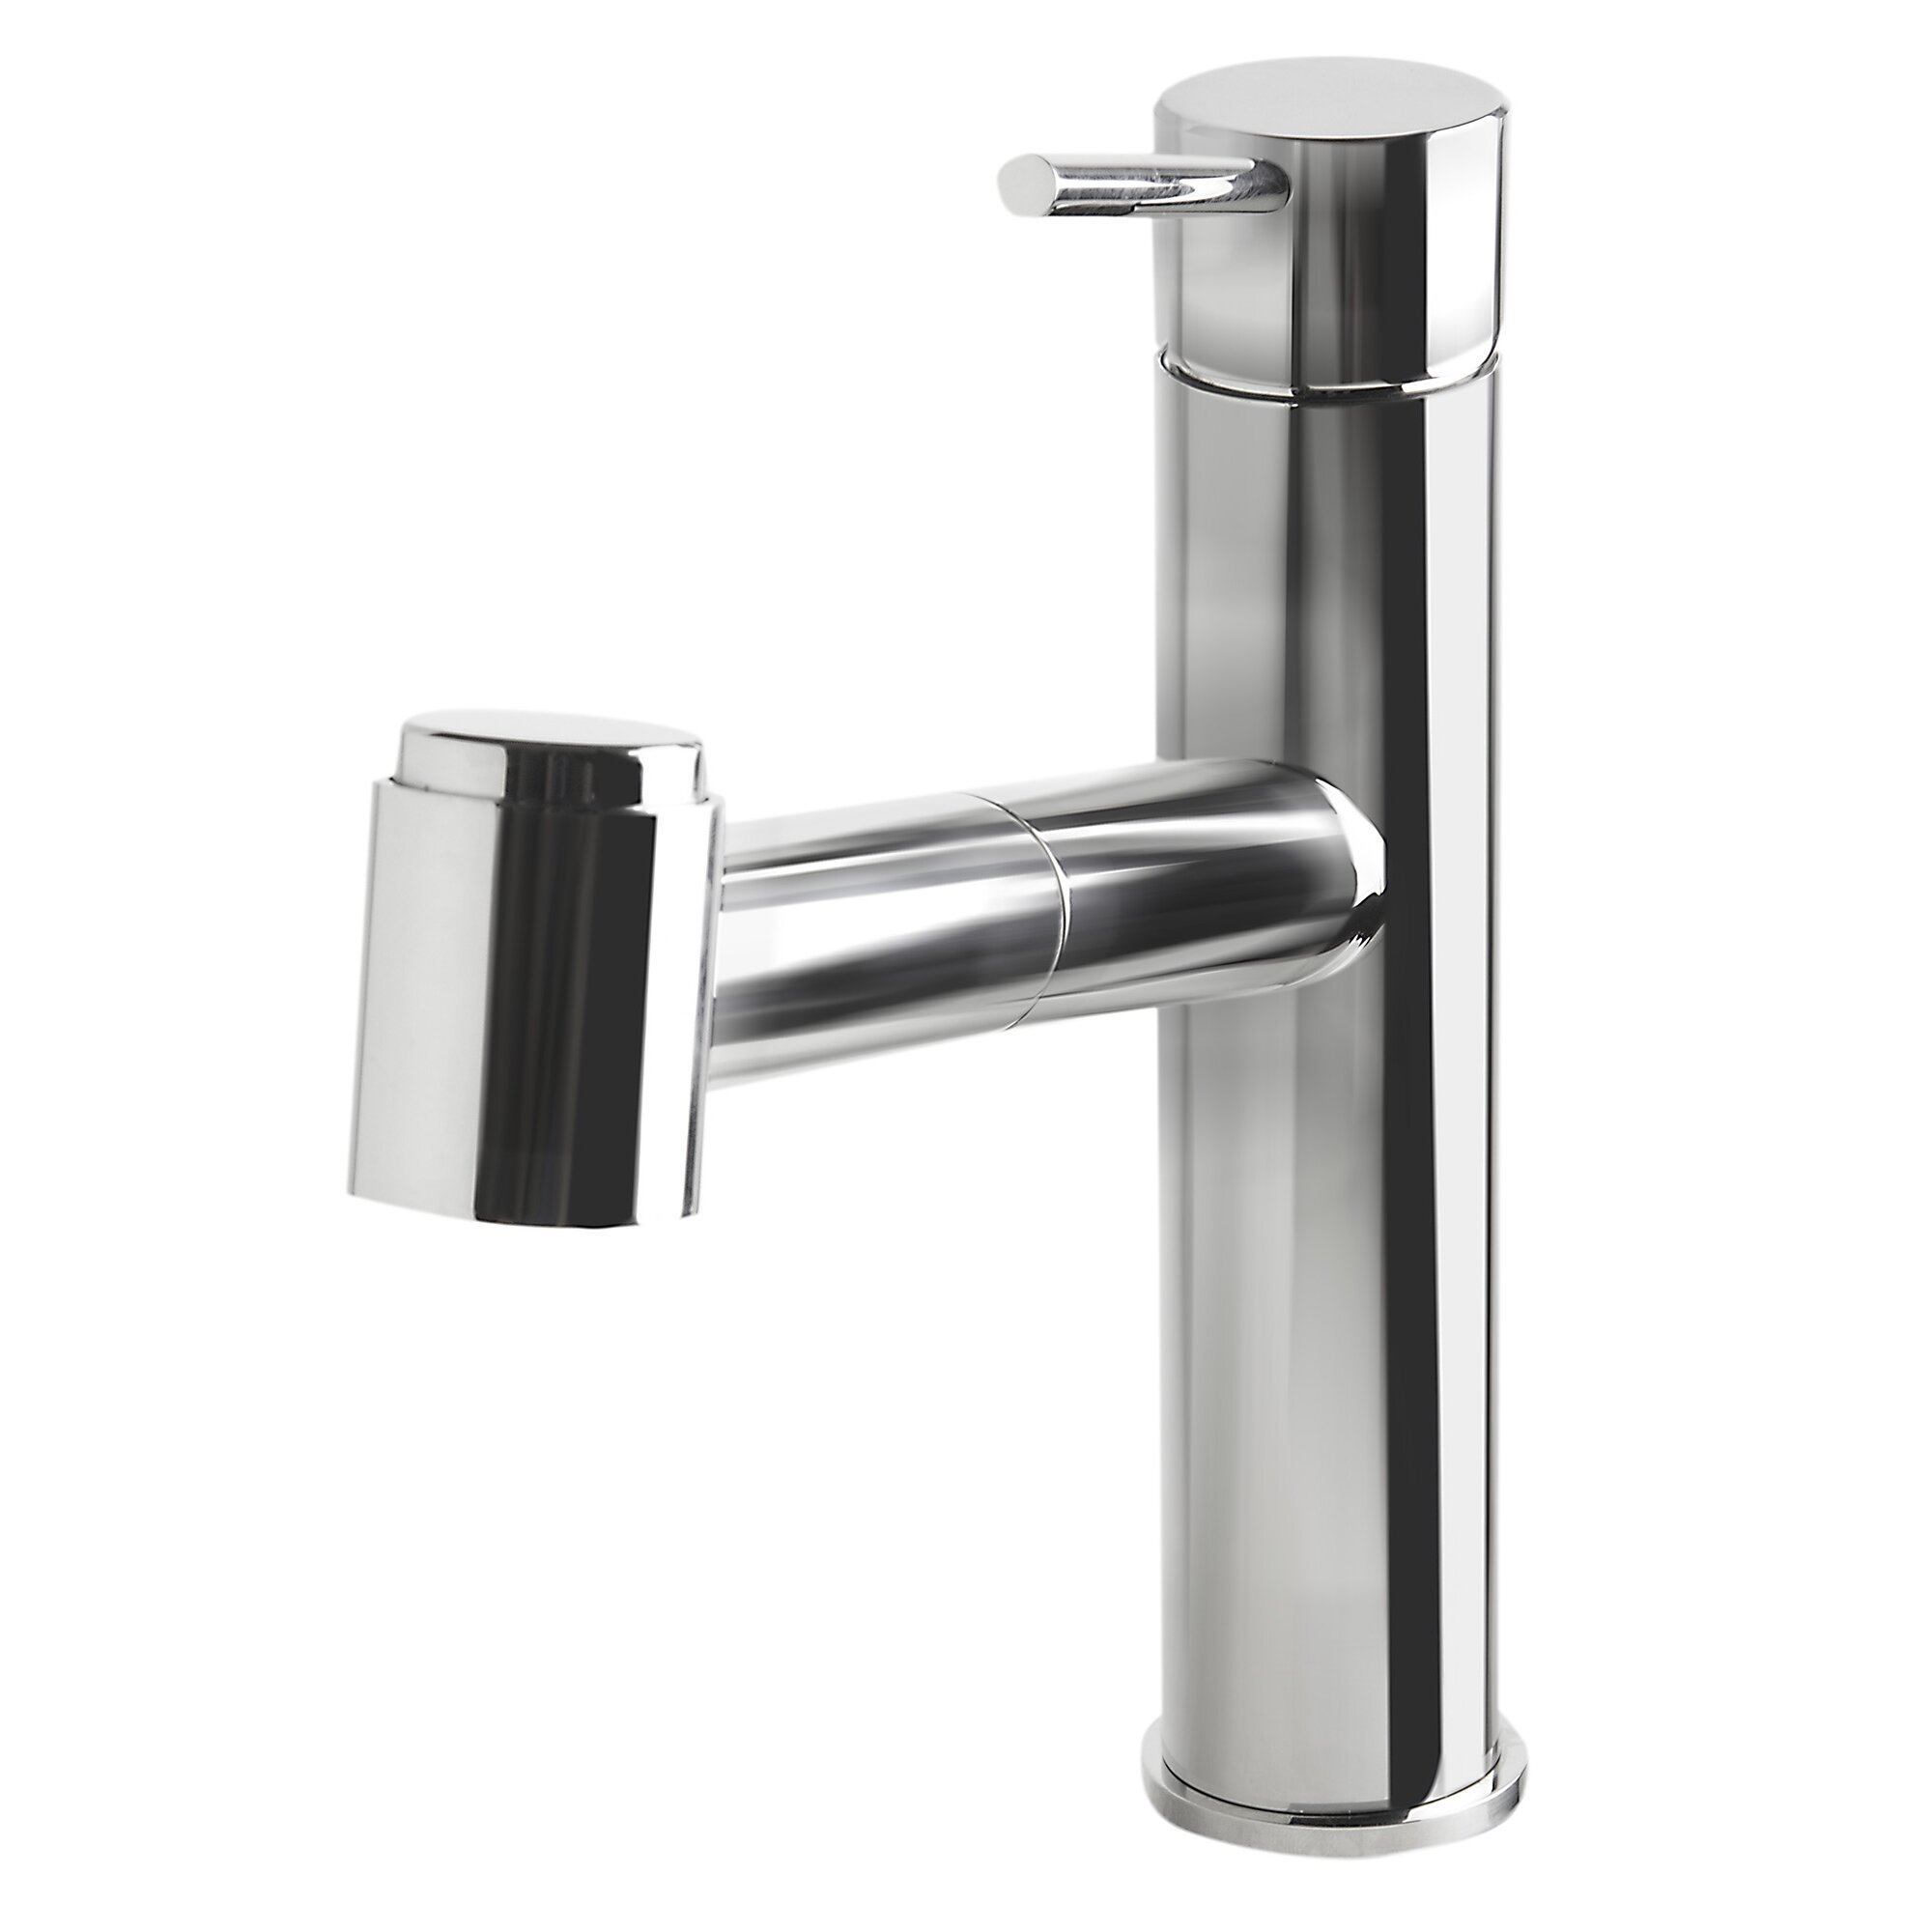 kitchen faucet pull out base cabinets with drawers alfi brand spray and reviews